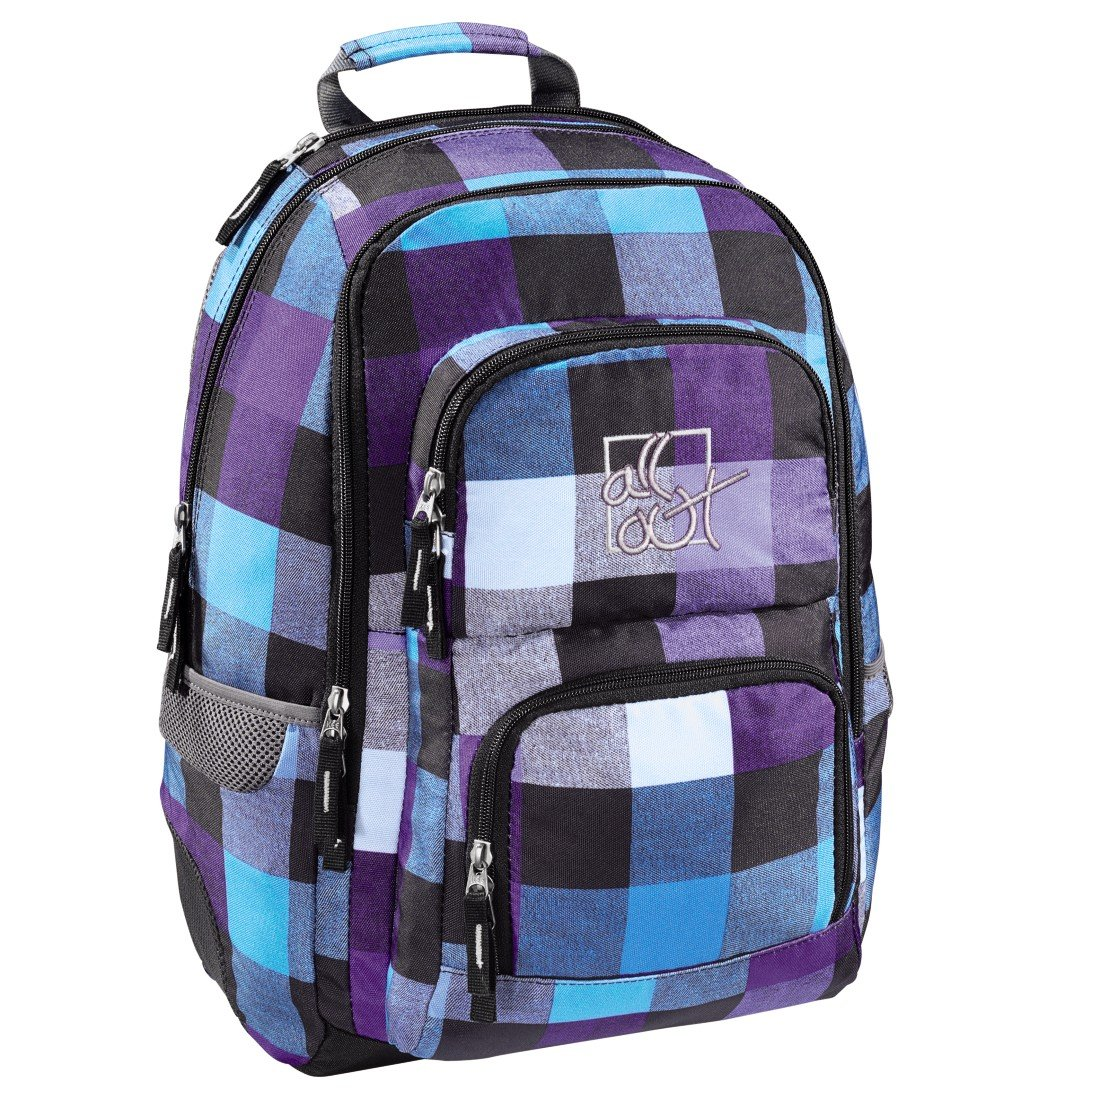 "'All Out Backpack Louth"", Caribbean Check (Blue) – 00124836"